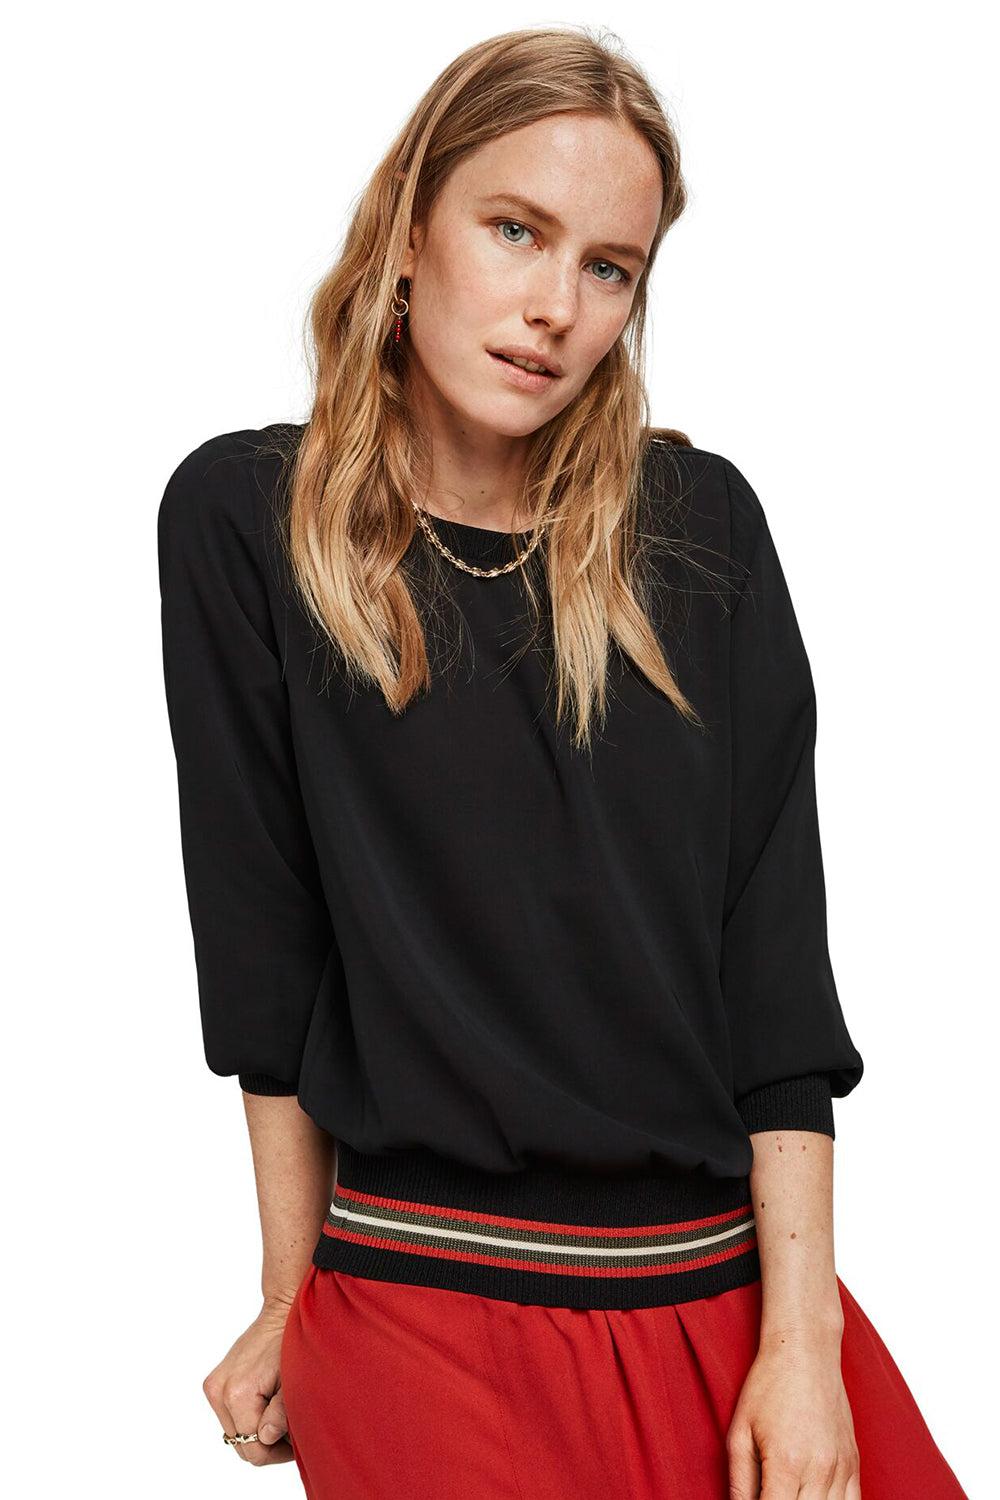 Maison Scotch / Top With Rib Details / Black